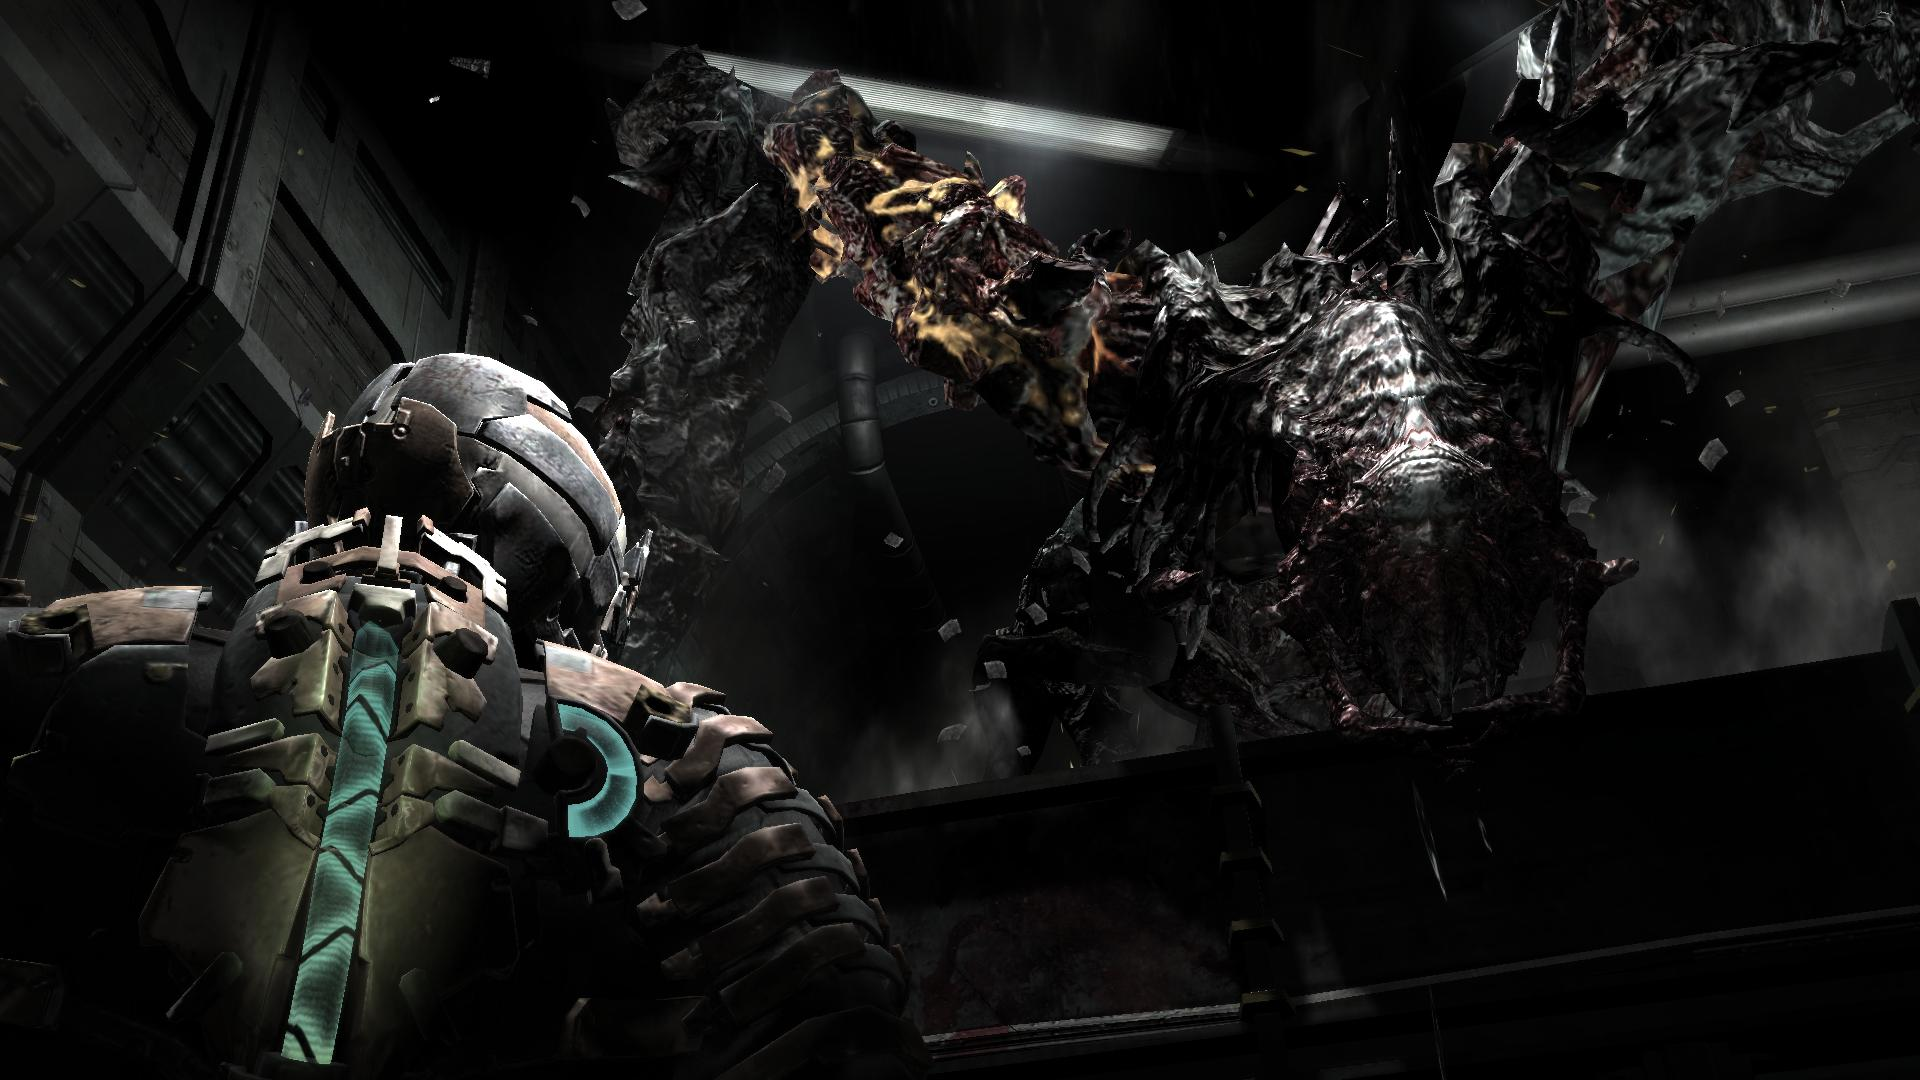 dead-space-2-image-screenshot-9.jpg